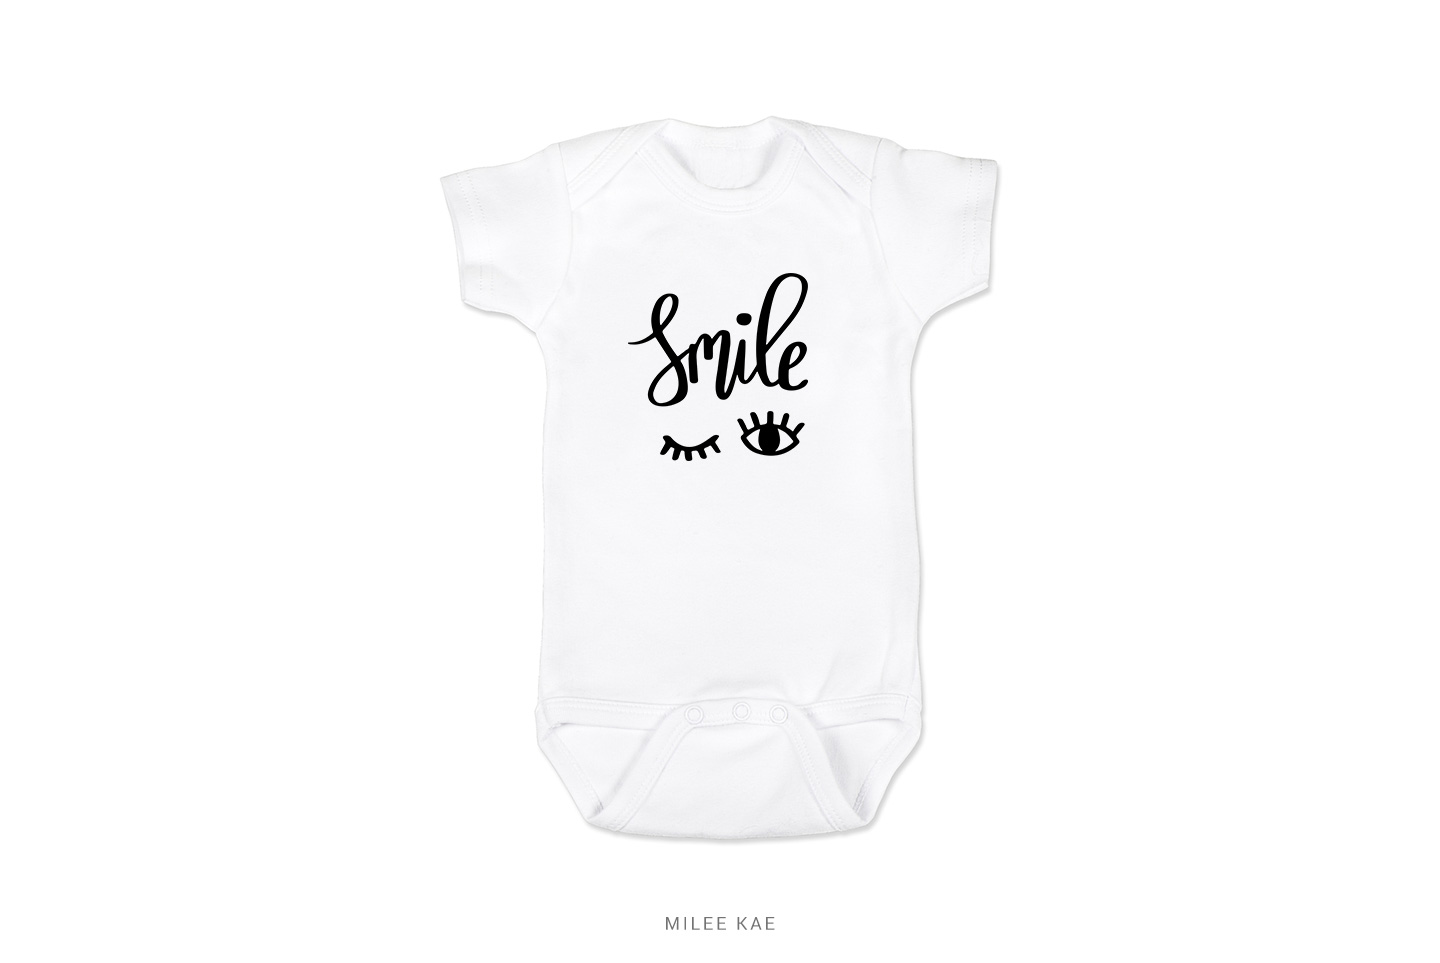 Smile, Cutting file, SVG, PNG, EPS, DXF example image 2